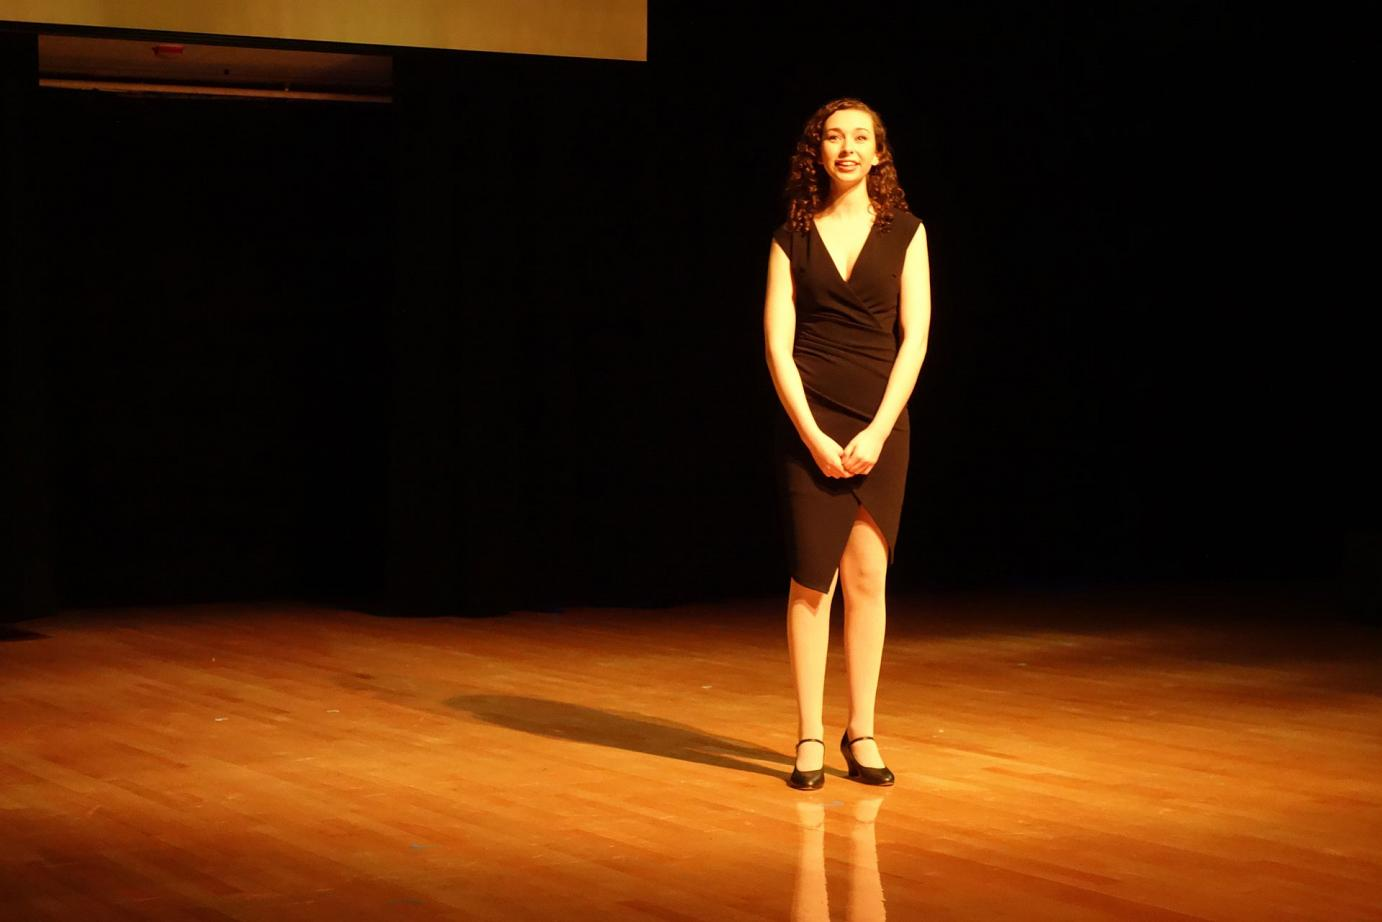 They Were You, from Fantastiks, performed by alumna Katherine Matlashewski accompanied by Patrick Ray